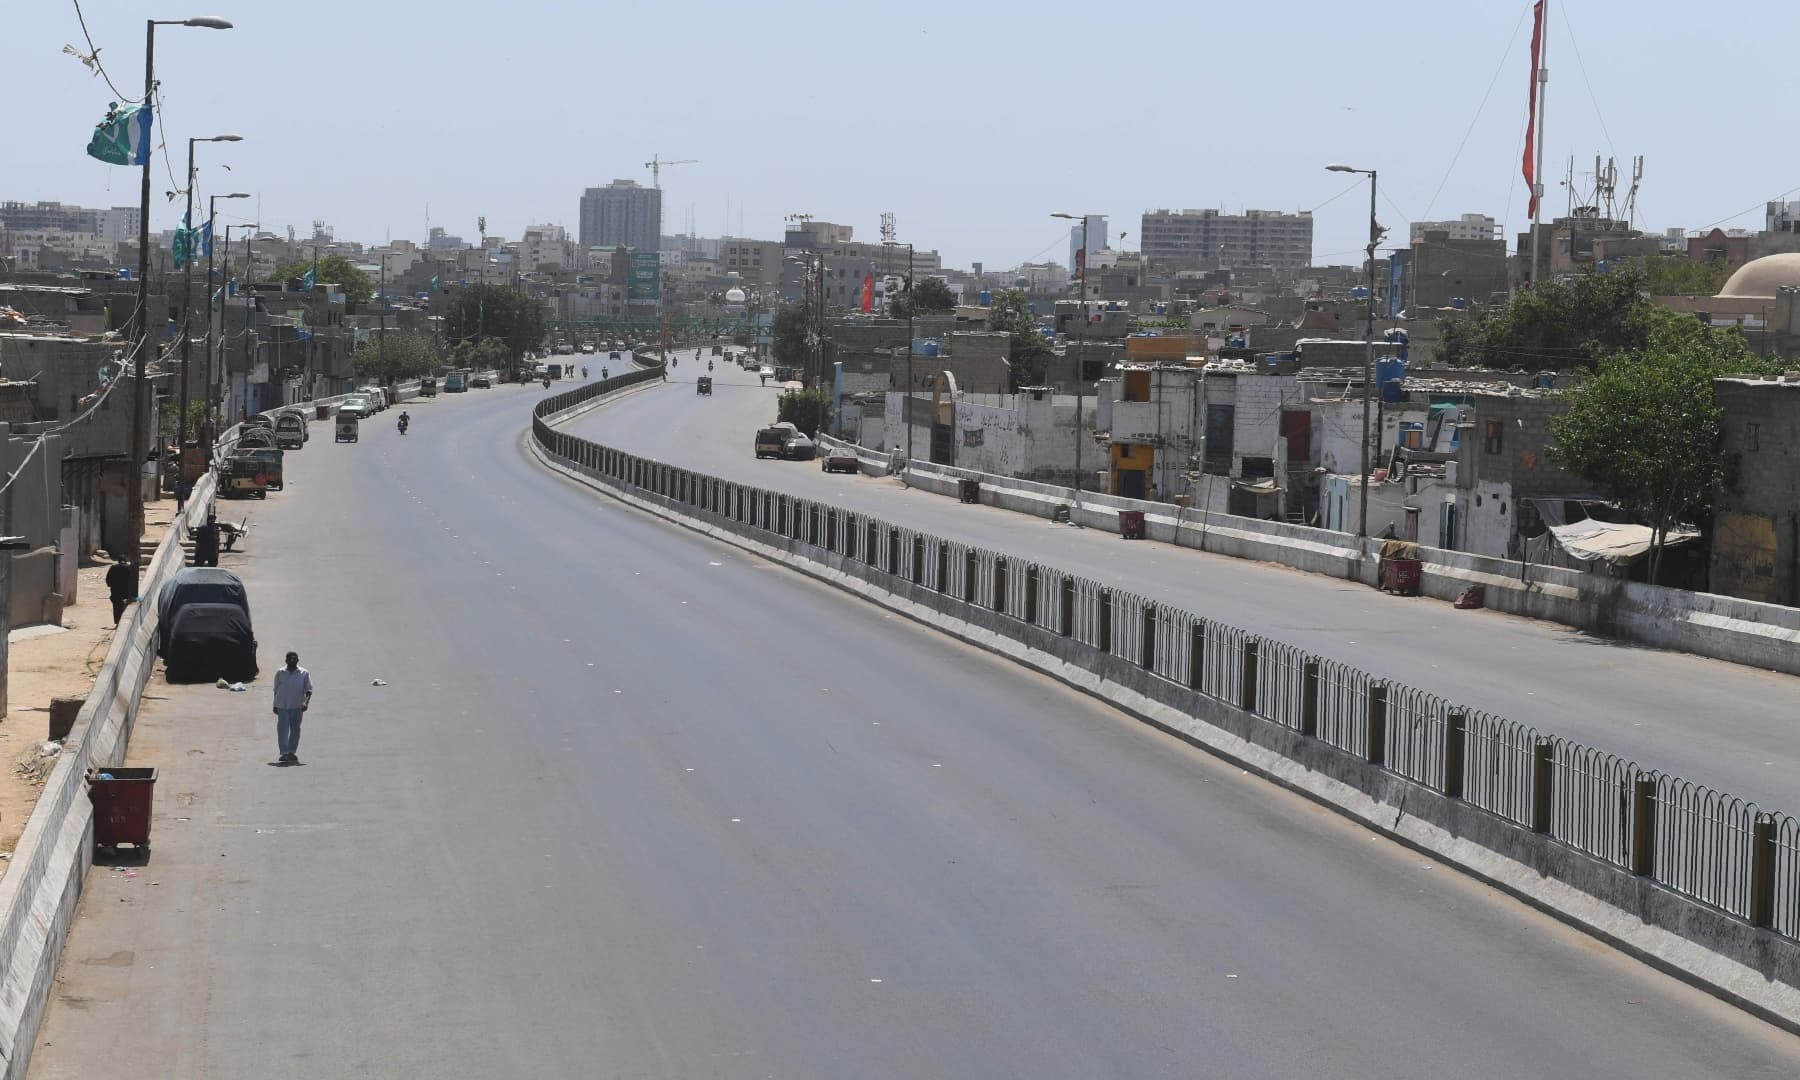 A man walks on a deserted street in Karachi. — AFP